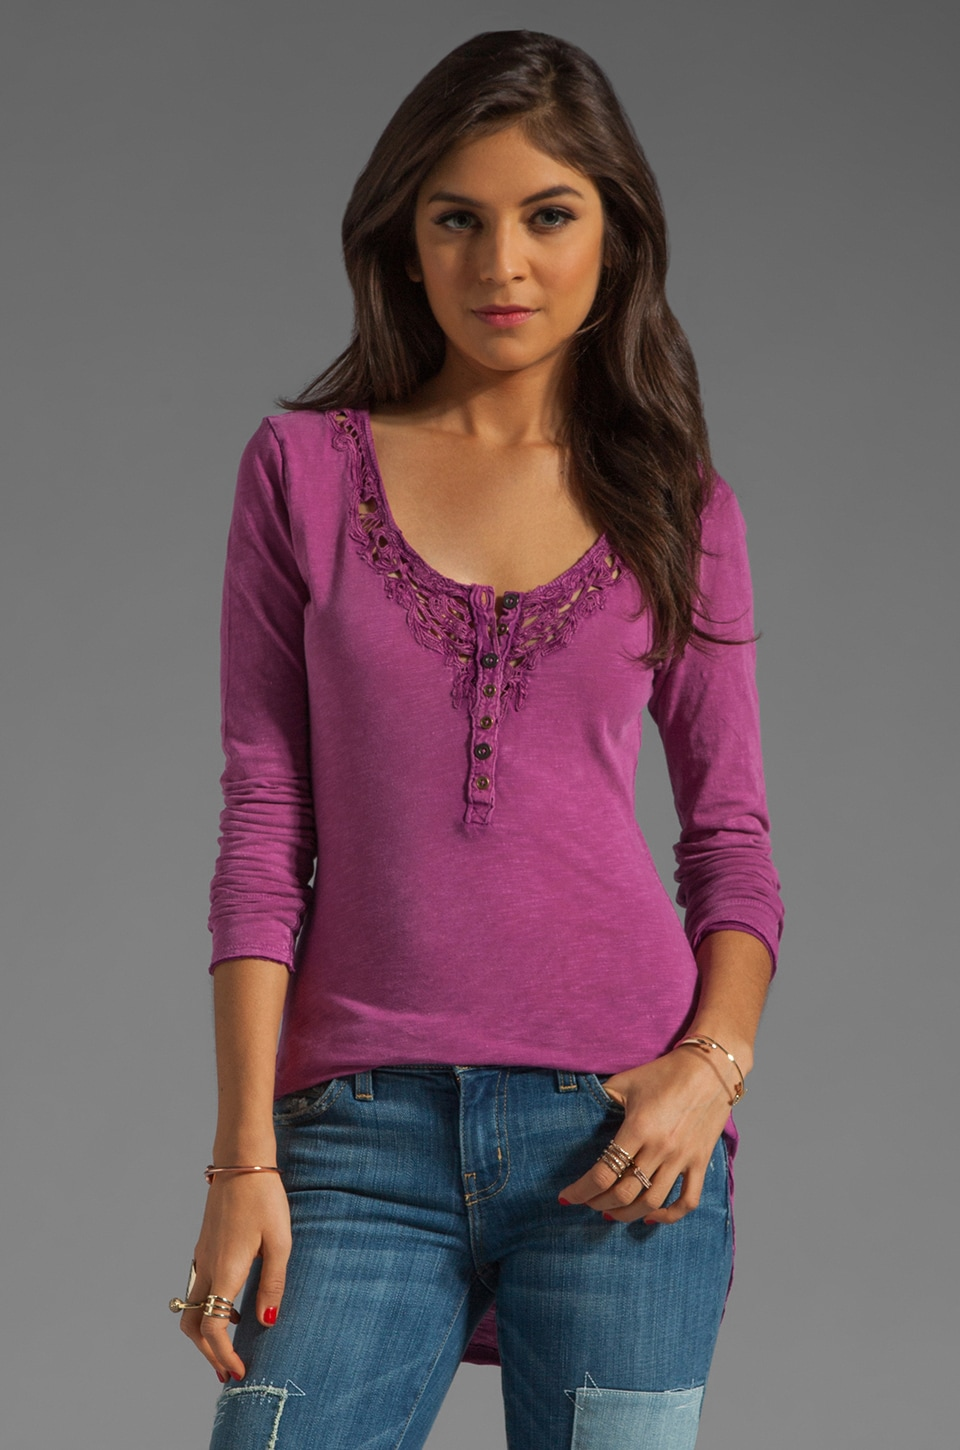 Free People Legacy Crochet Henley Top in Orchid